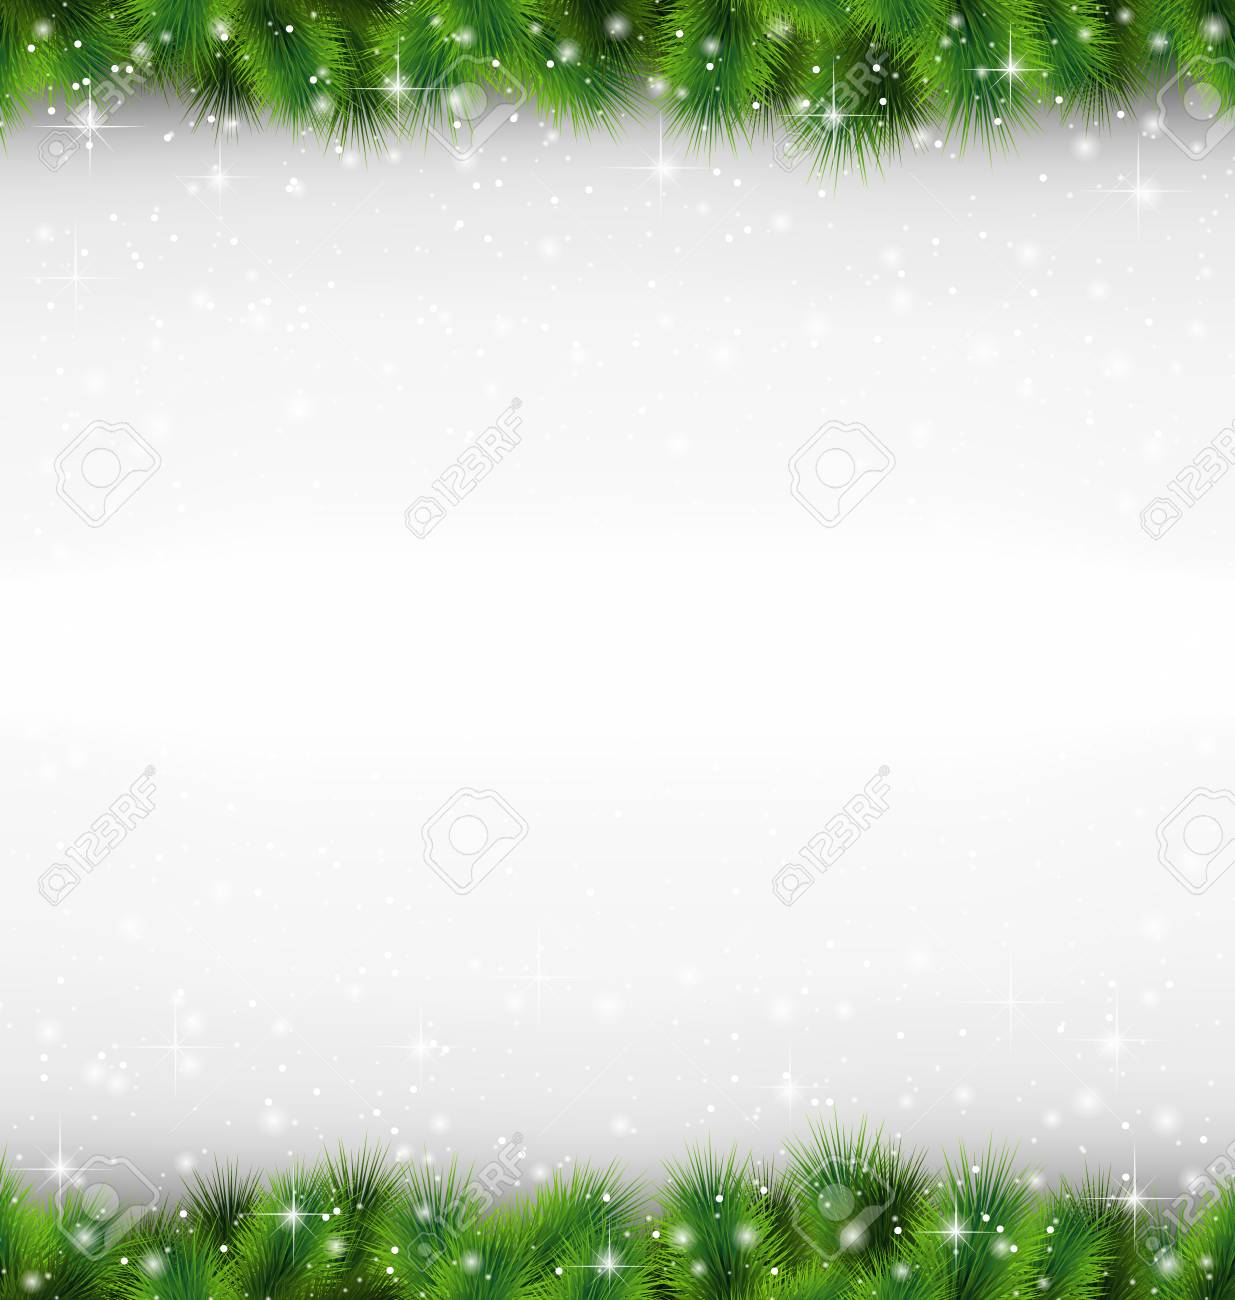 Shiny green pine branches like frame in snowfall on grayscale background - 33955389